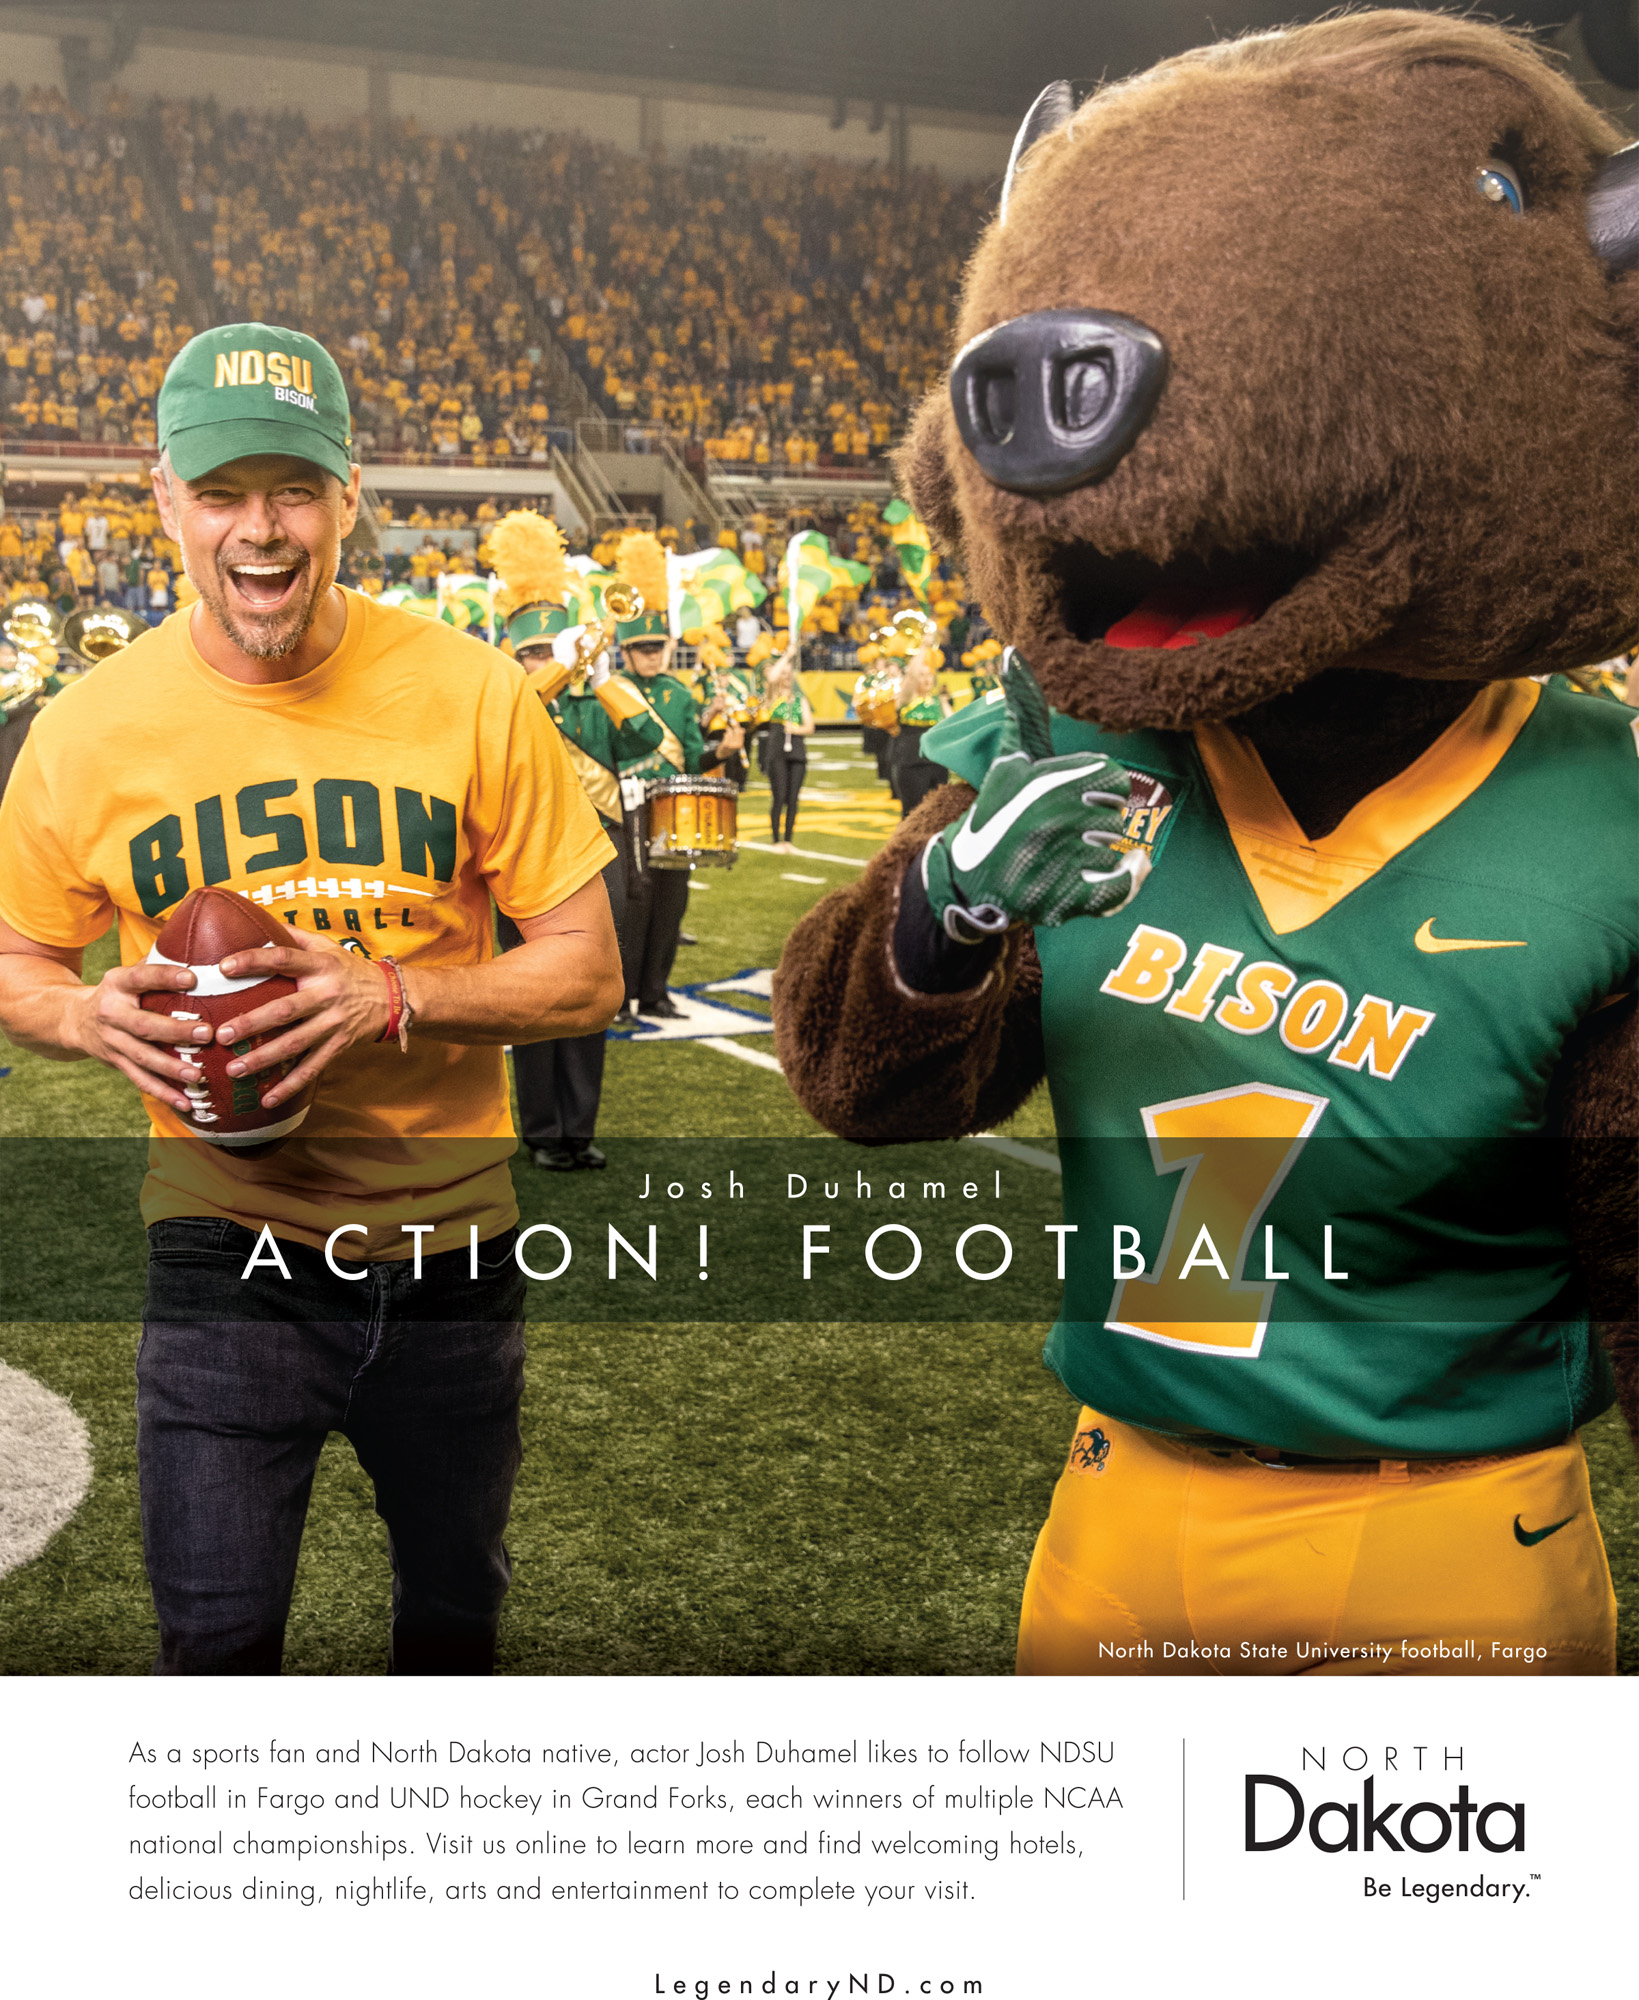 Josh Duhamel holds a football on the field next to the North Dakota State Bisons mascot.